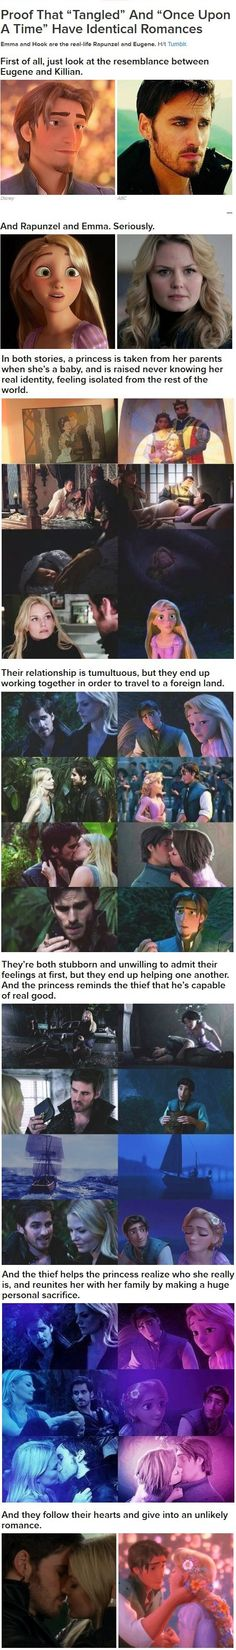 Proof that Tangled and Captain Swan has an extremely similar romance!